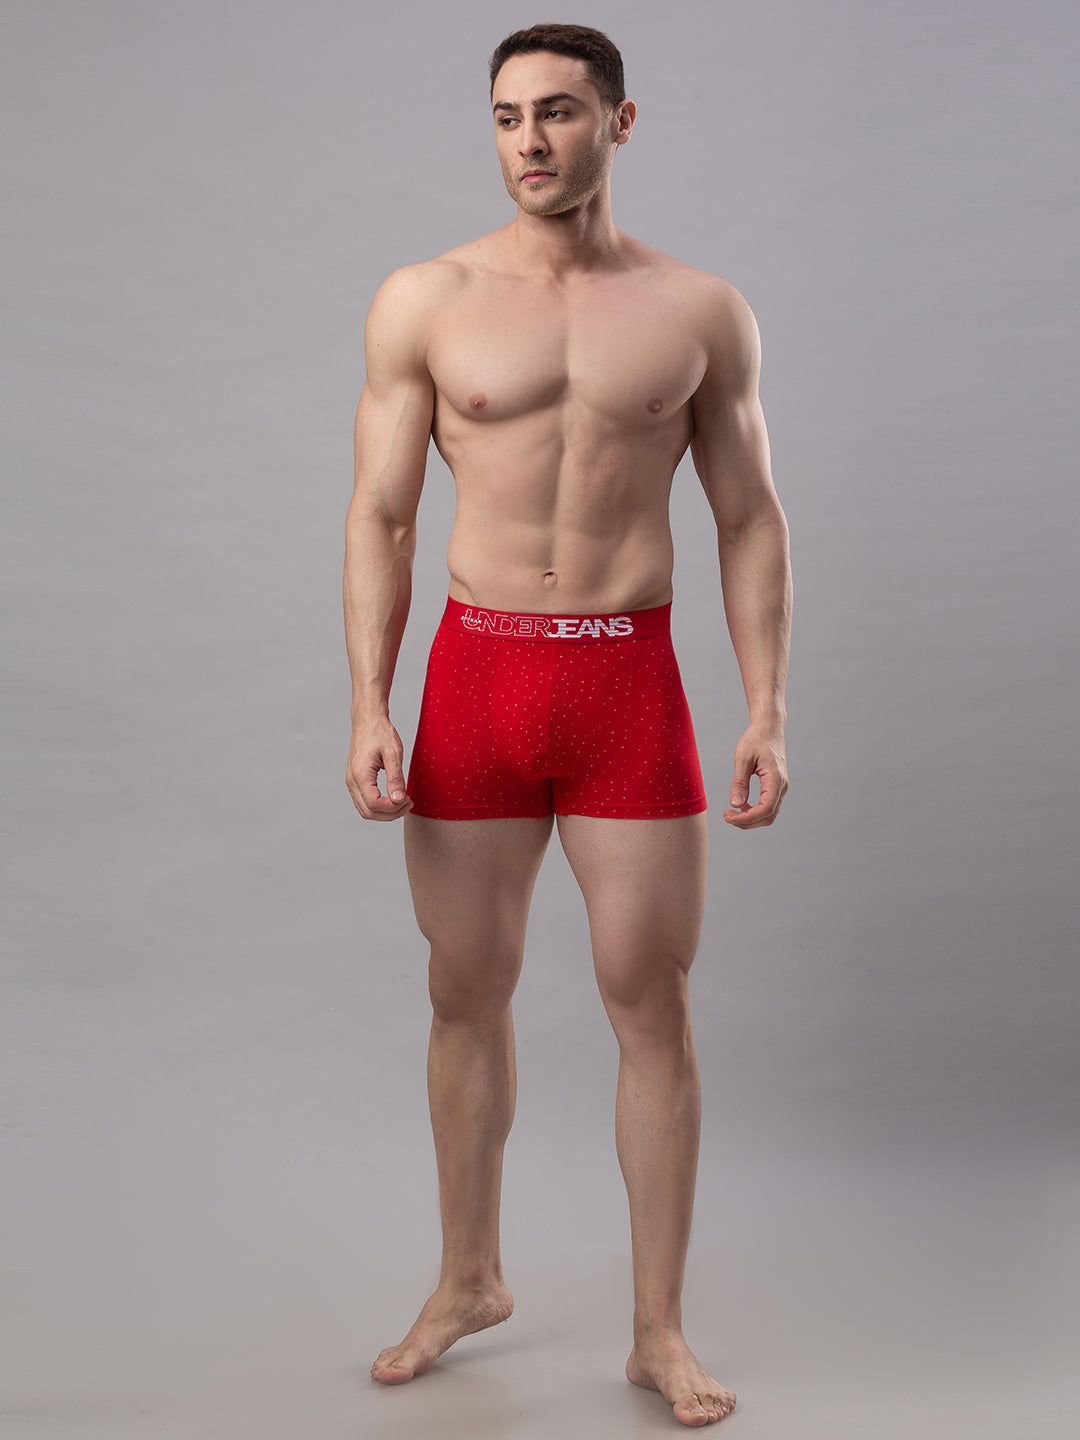 Underjeans Red Cotton Trunks - Pack of 2